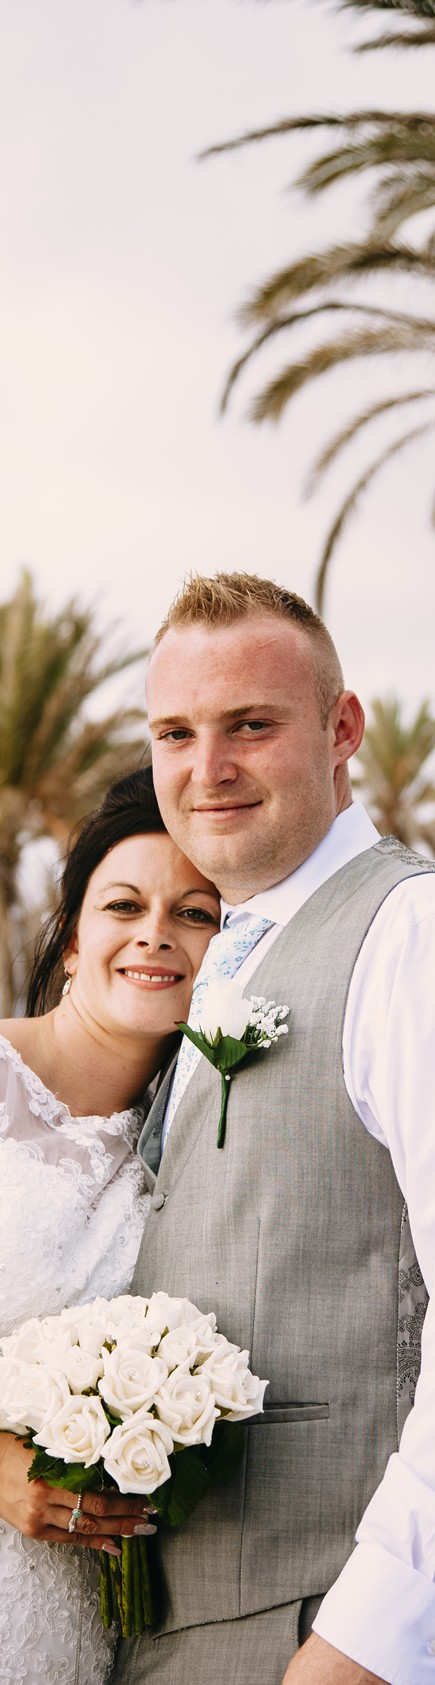 Wedding-Caroline-and-James-in-tenerife-myperfectwedding0437